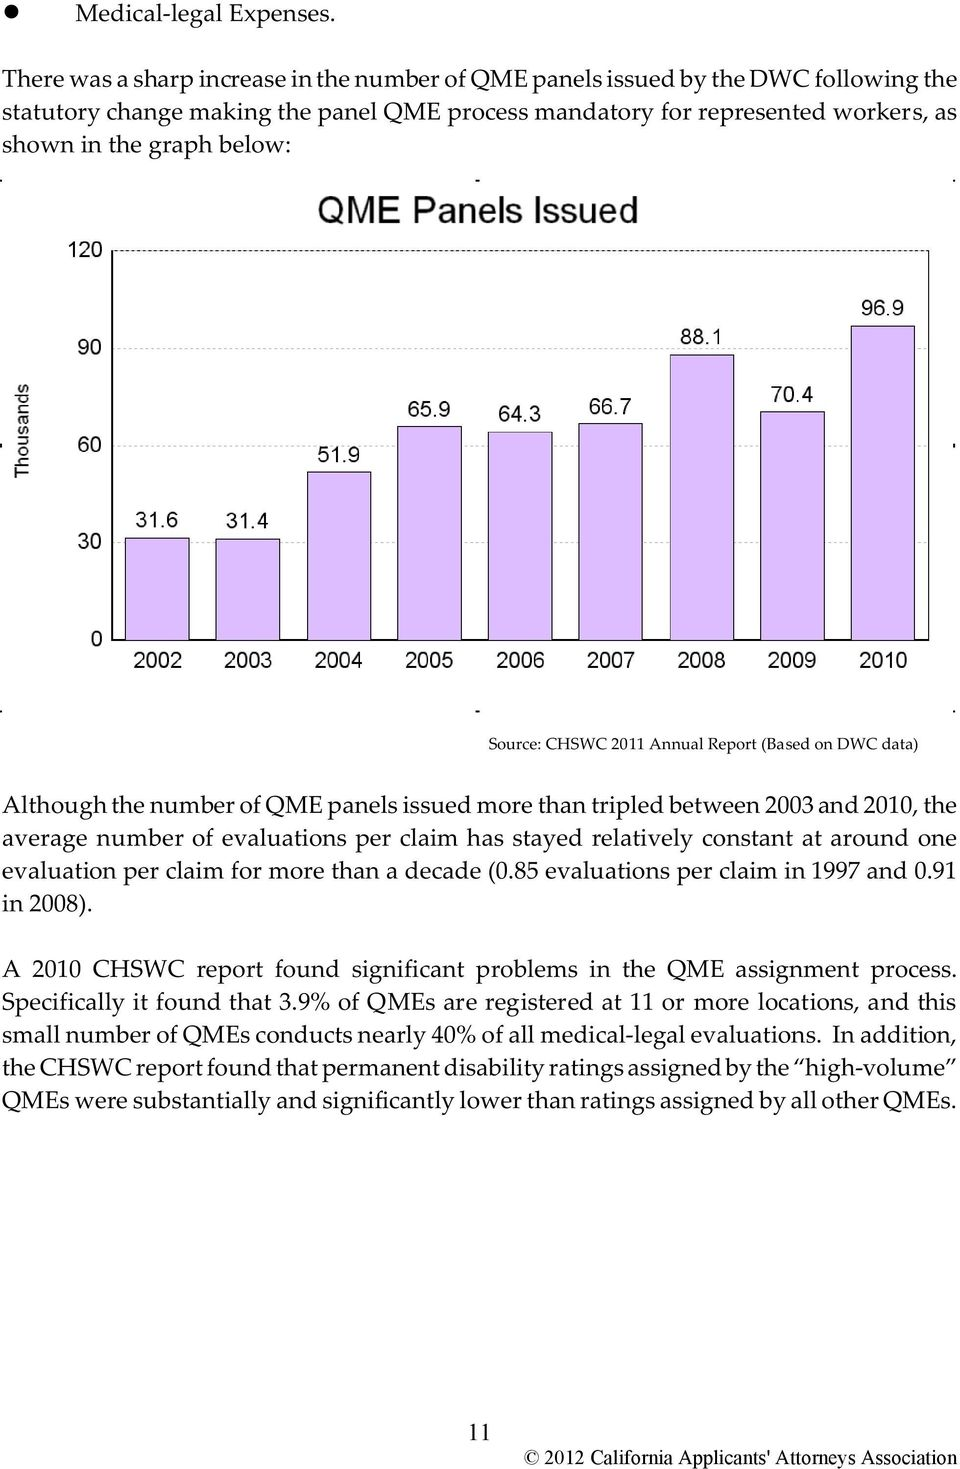 Source: CHSWC 2011 Annual Report (Based on DWC data) Although the number of QME panels issued more than tripled between 2003 and 2010, the average number of evaluations per claim has stayed